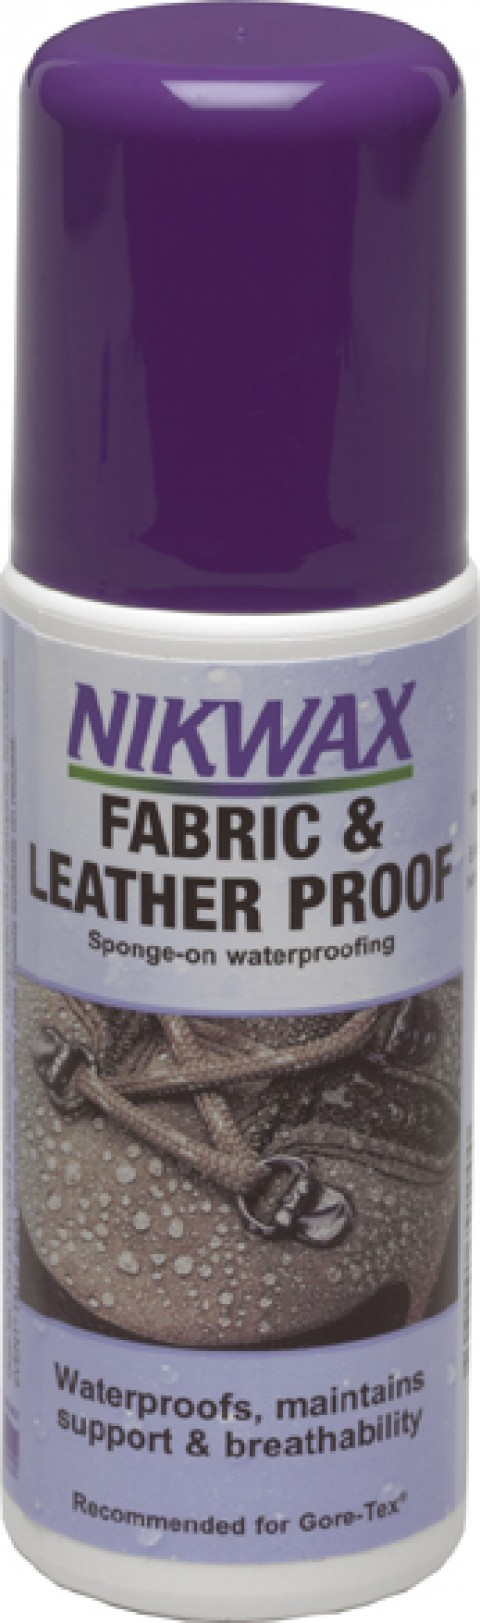 Nikwax Fabric & Leather